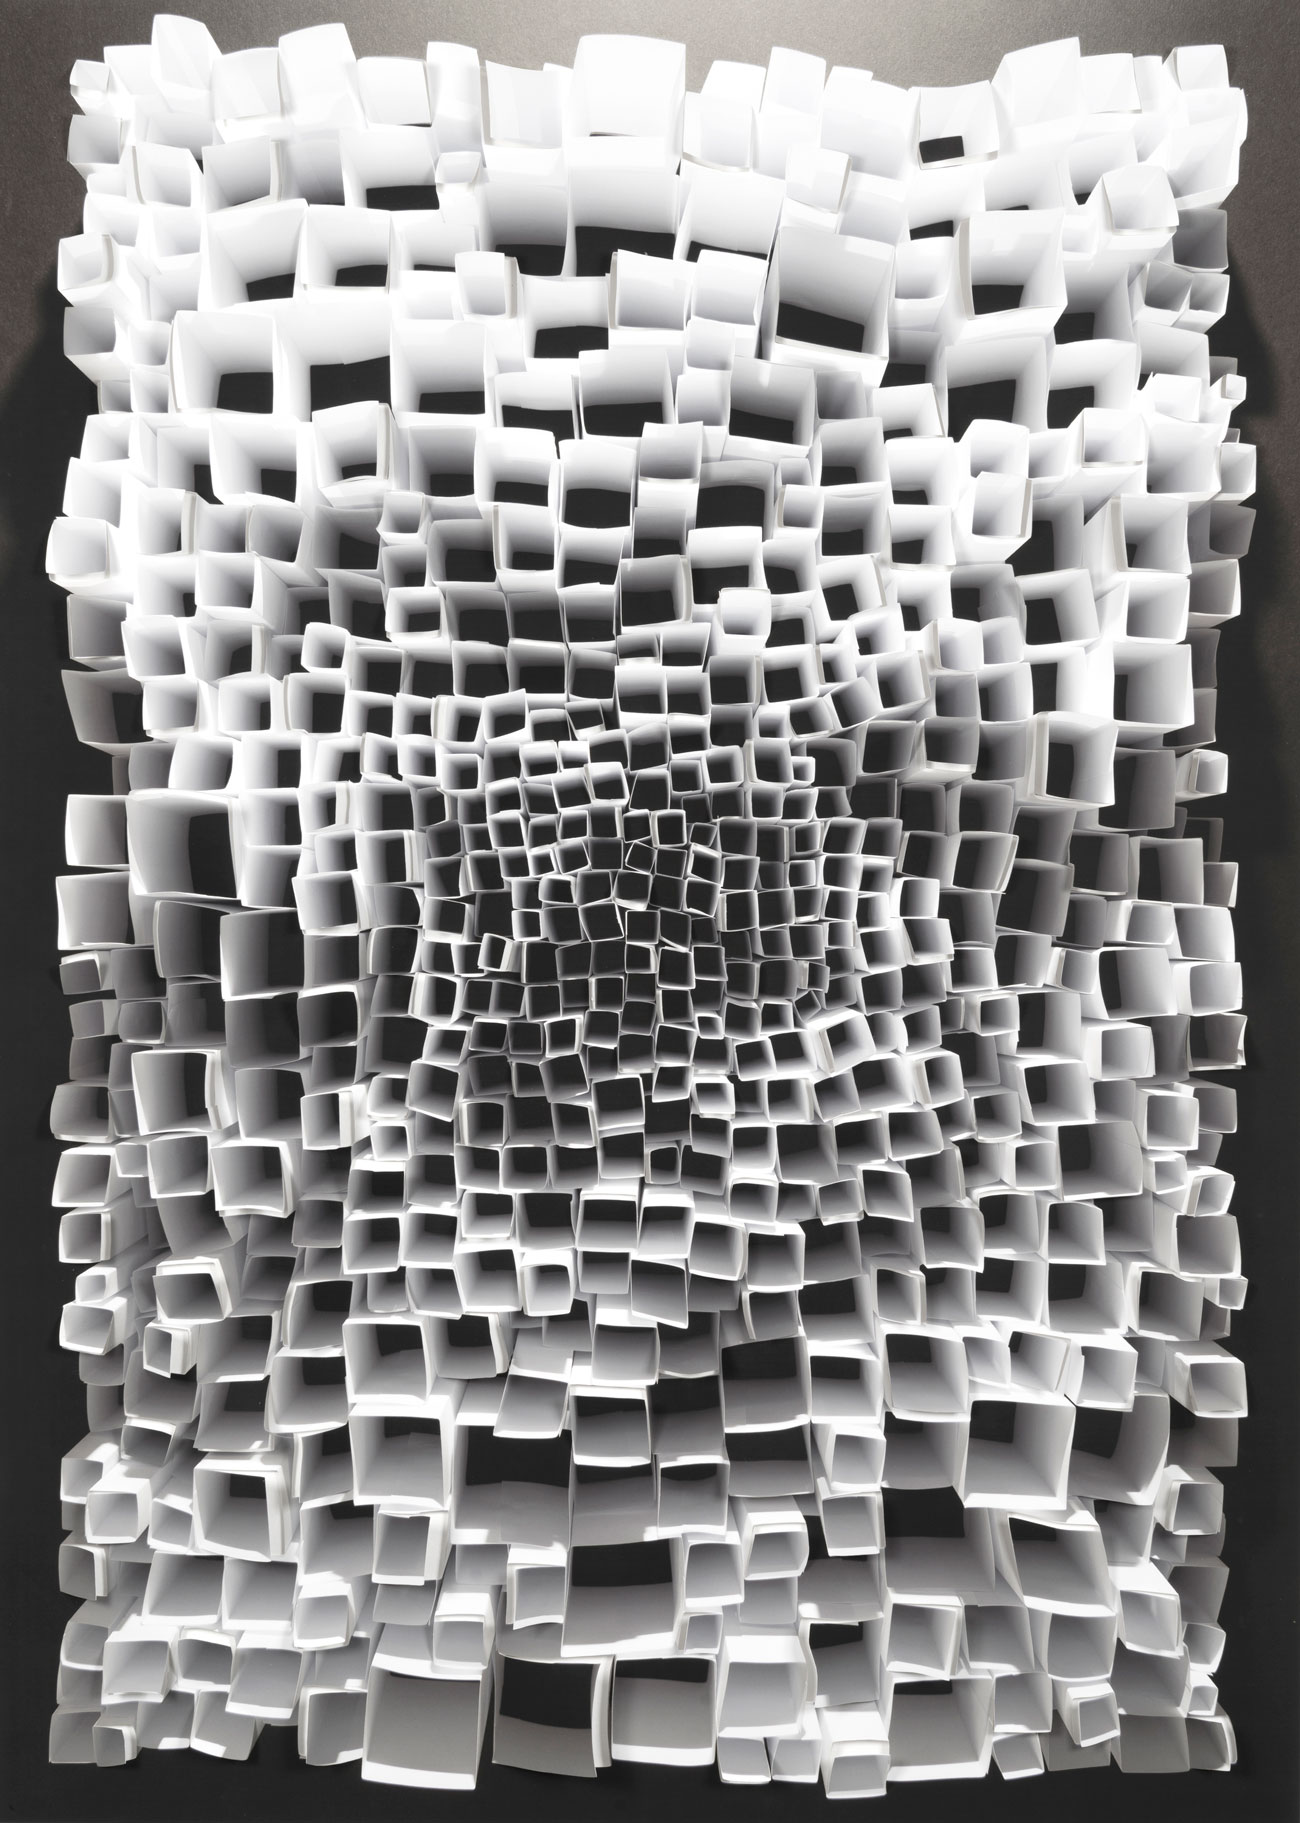 Black and white looking down upon an assembly of a paper folded into square tubes. The tubes of various sizes are arranged in a rectangle shape that fills the image.